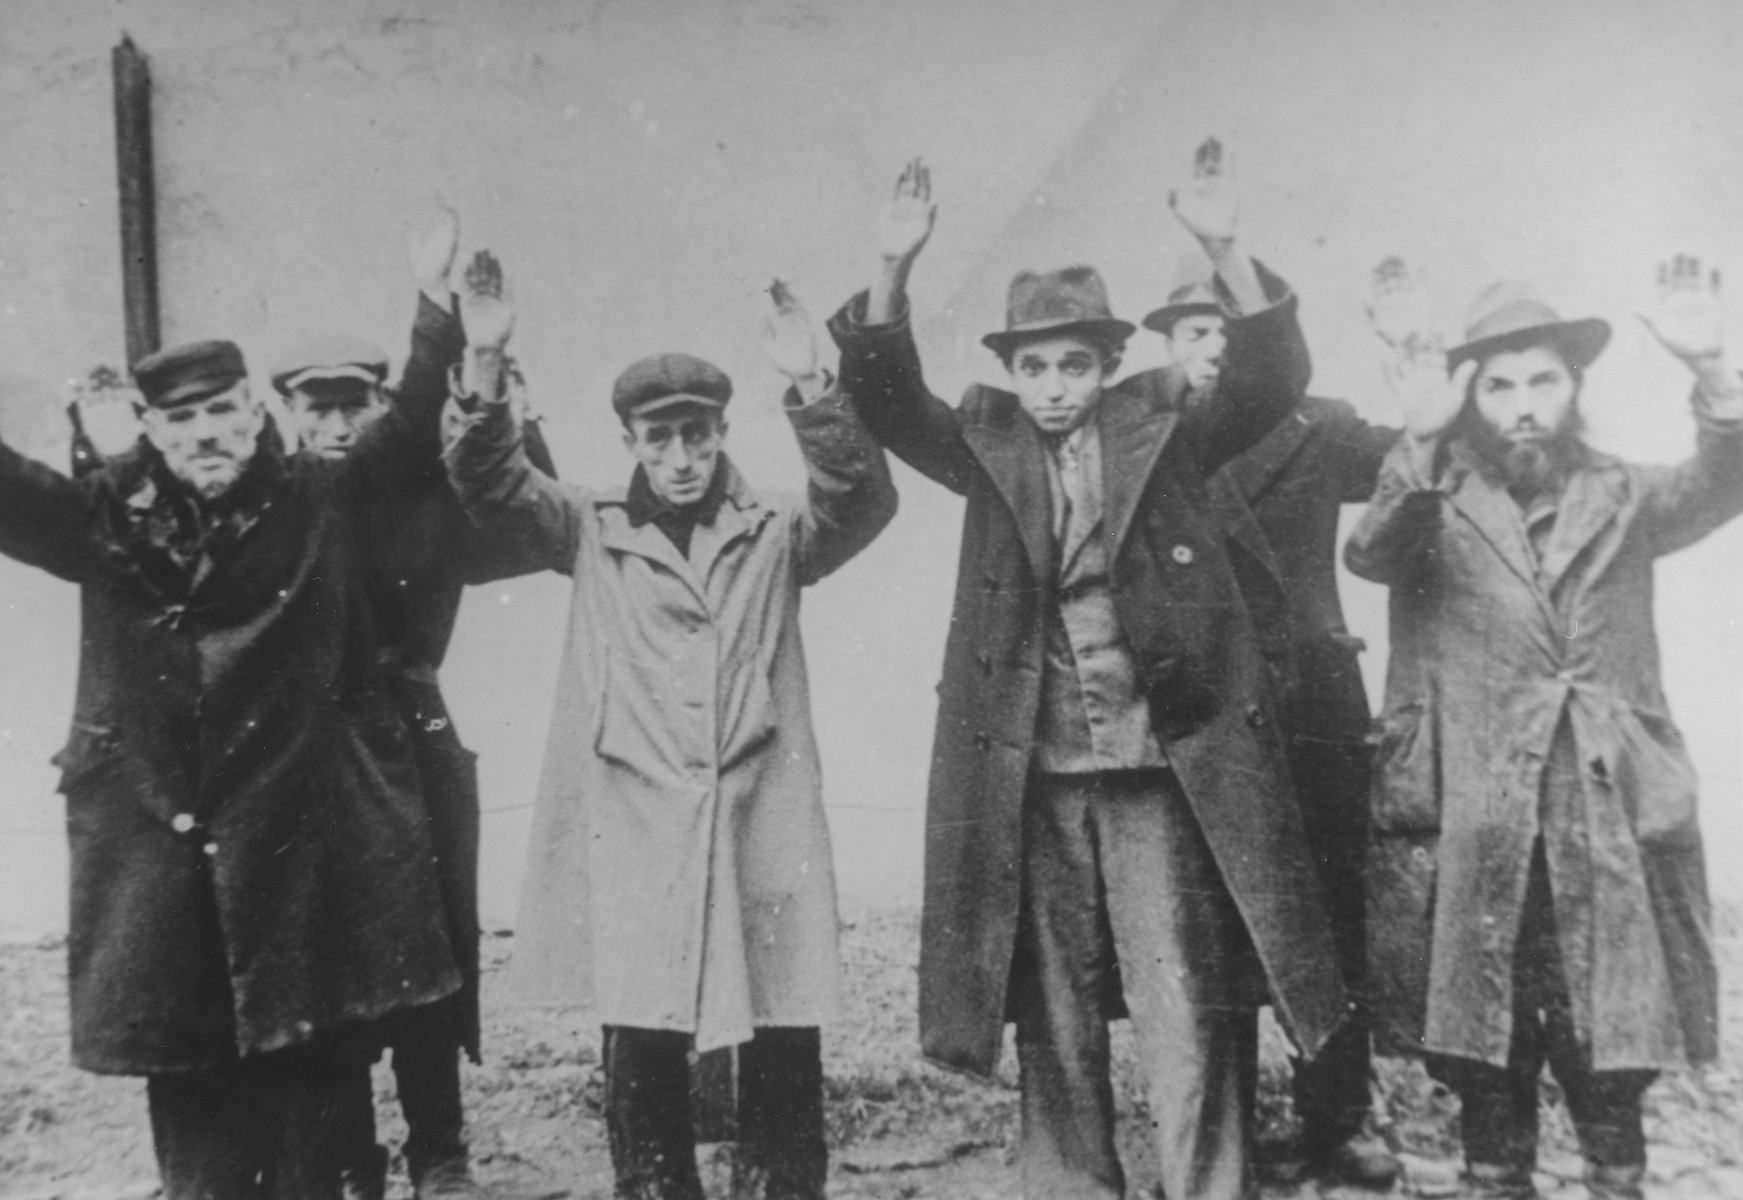 A group of Jewish men are forced to stand with their arms raised in an unidentified Polish town.